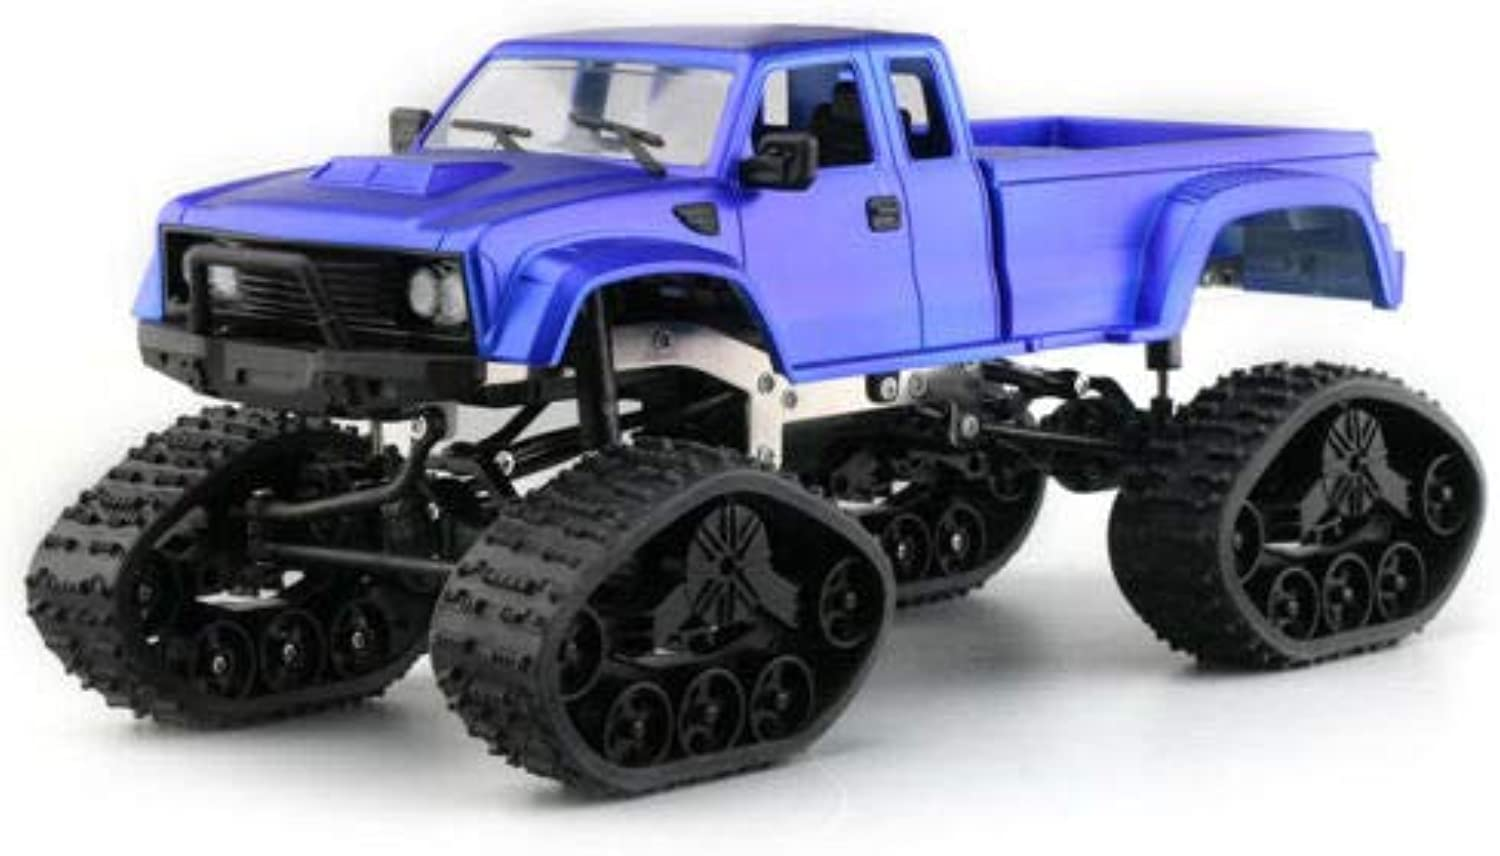 FidgetKute Fayee FY002B 1 16 2.4G 4WD OffRoad RC Car Military Truck with Front Light Cobalt bluee